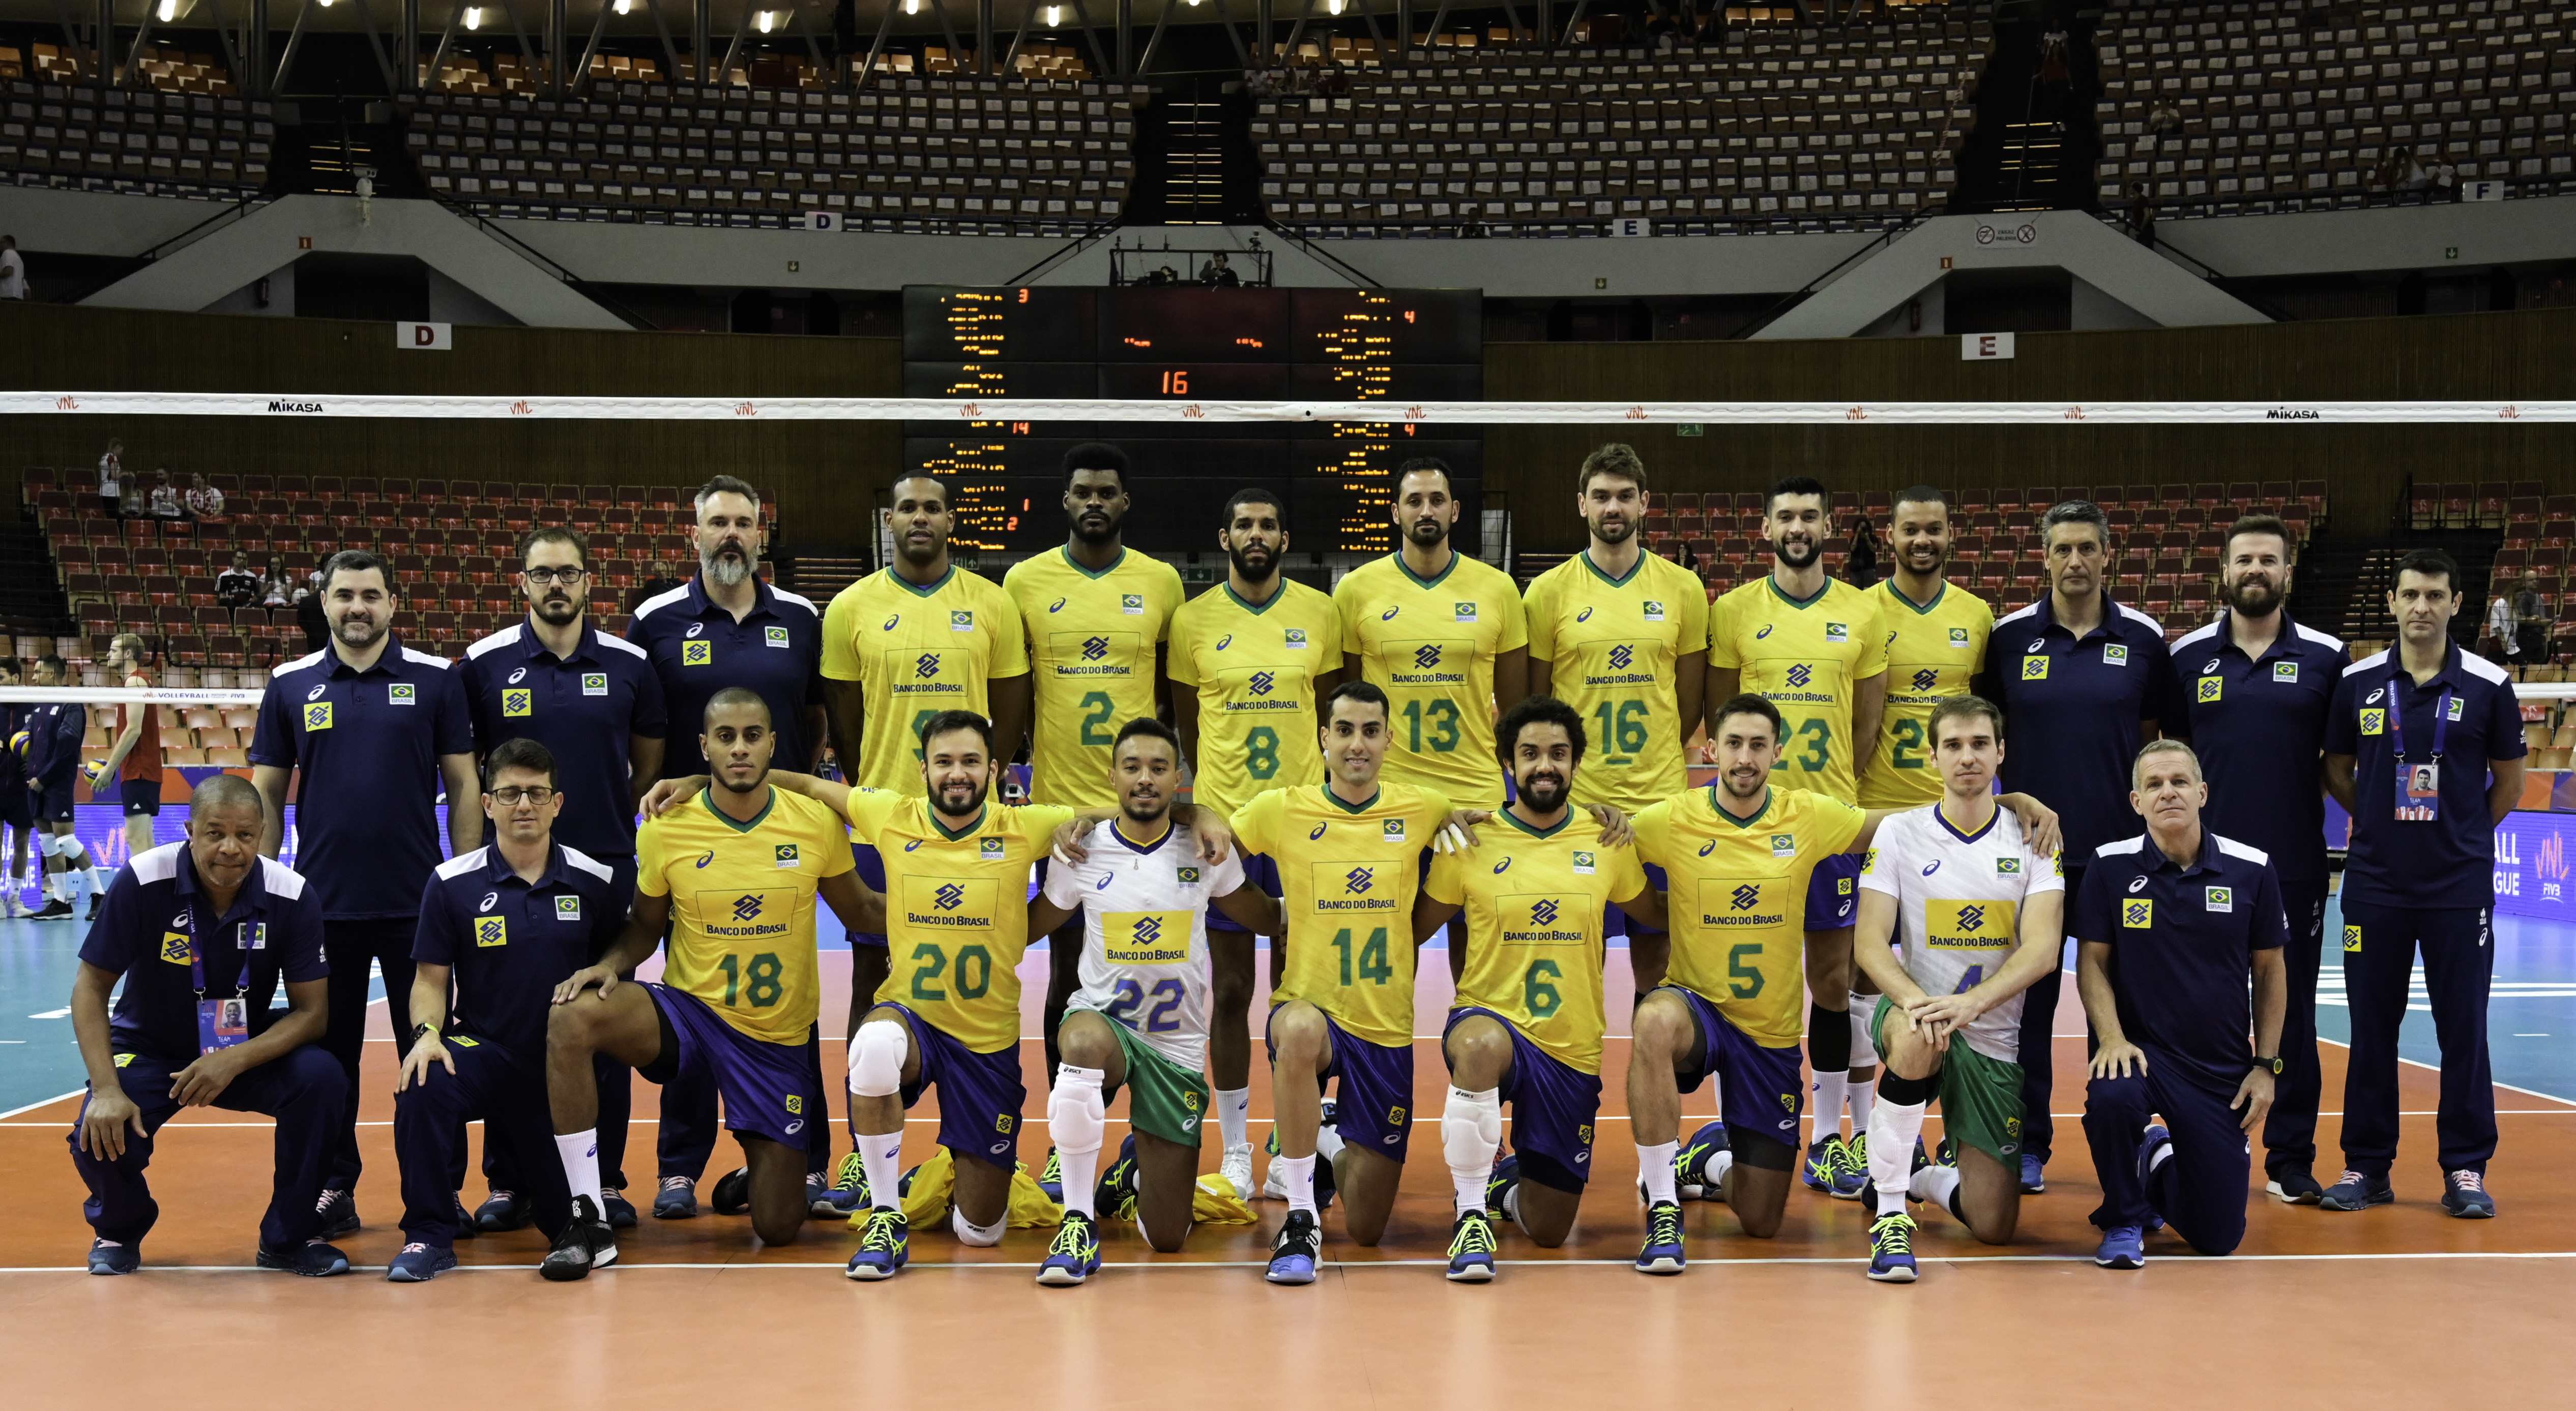 Fivb Volleyball Nations League 2018 Men S Teams Overview Brazil Volleyball Nations League 2021